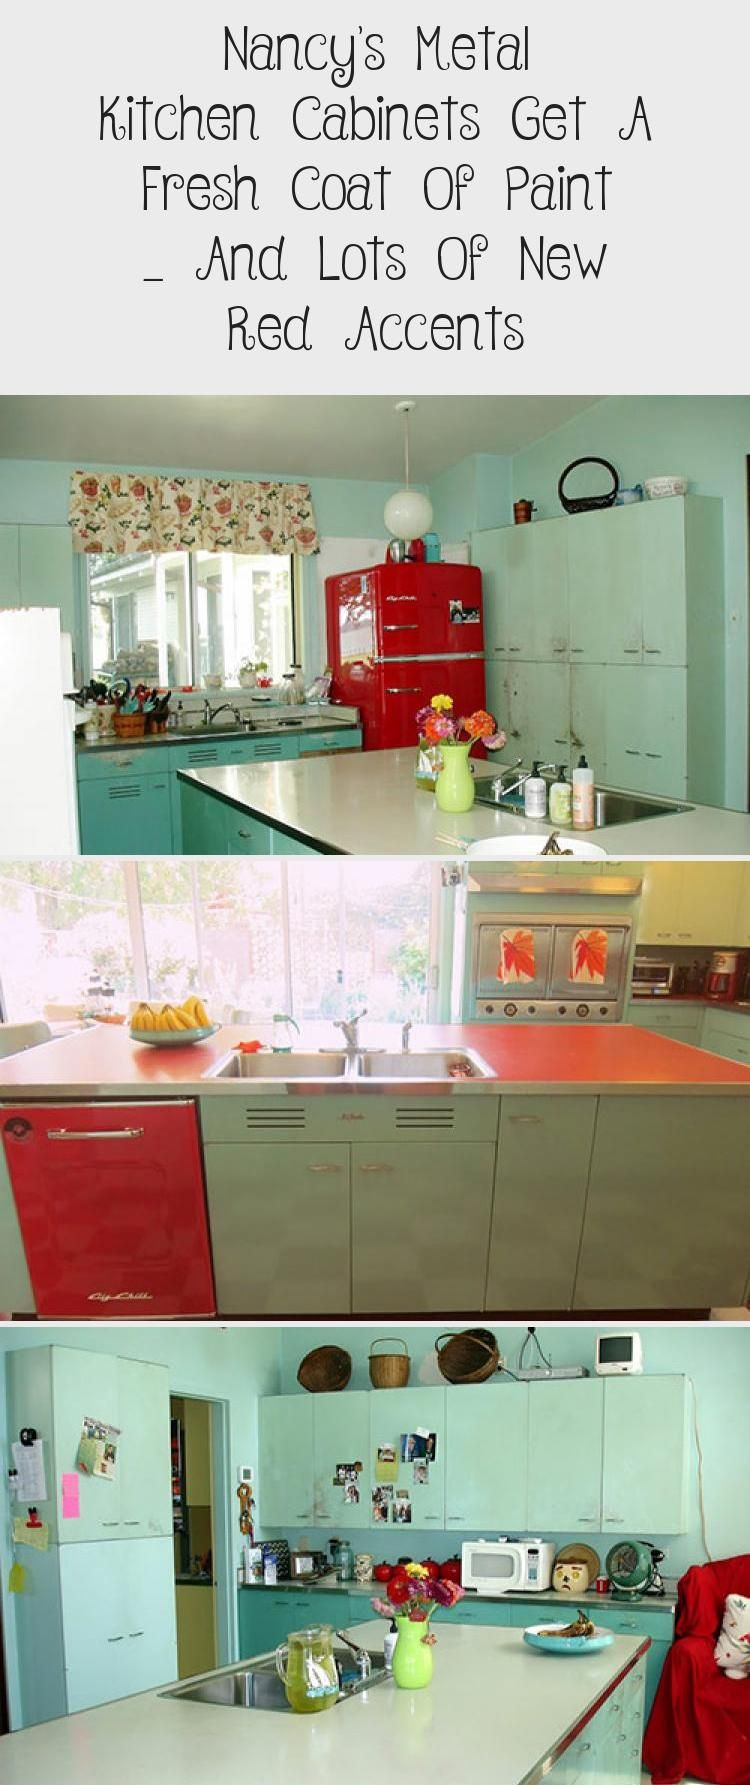 Nancy S Metal Kitchen Cabinets Get A Fresh Coat Of Paint And Lots Of New Red Accents In 2020 Metal Kitchen Cabinets Metal Kitchen Vintage Kitchen Sink